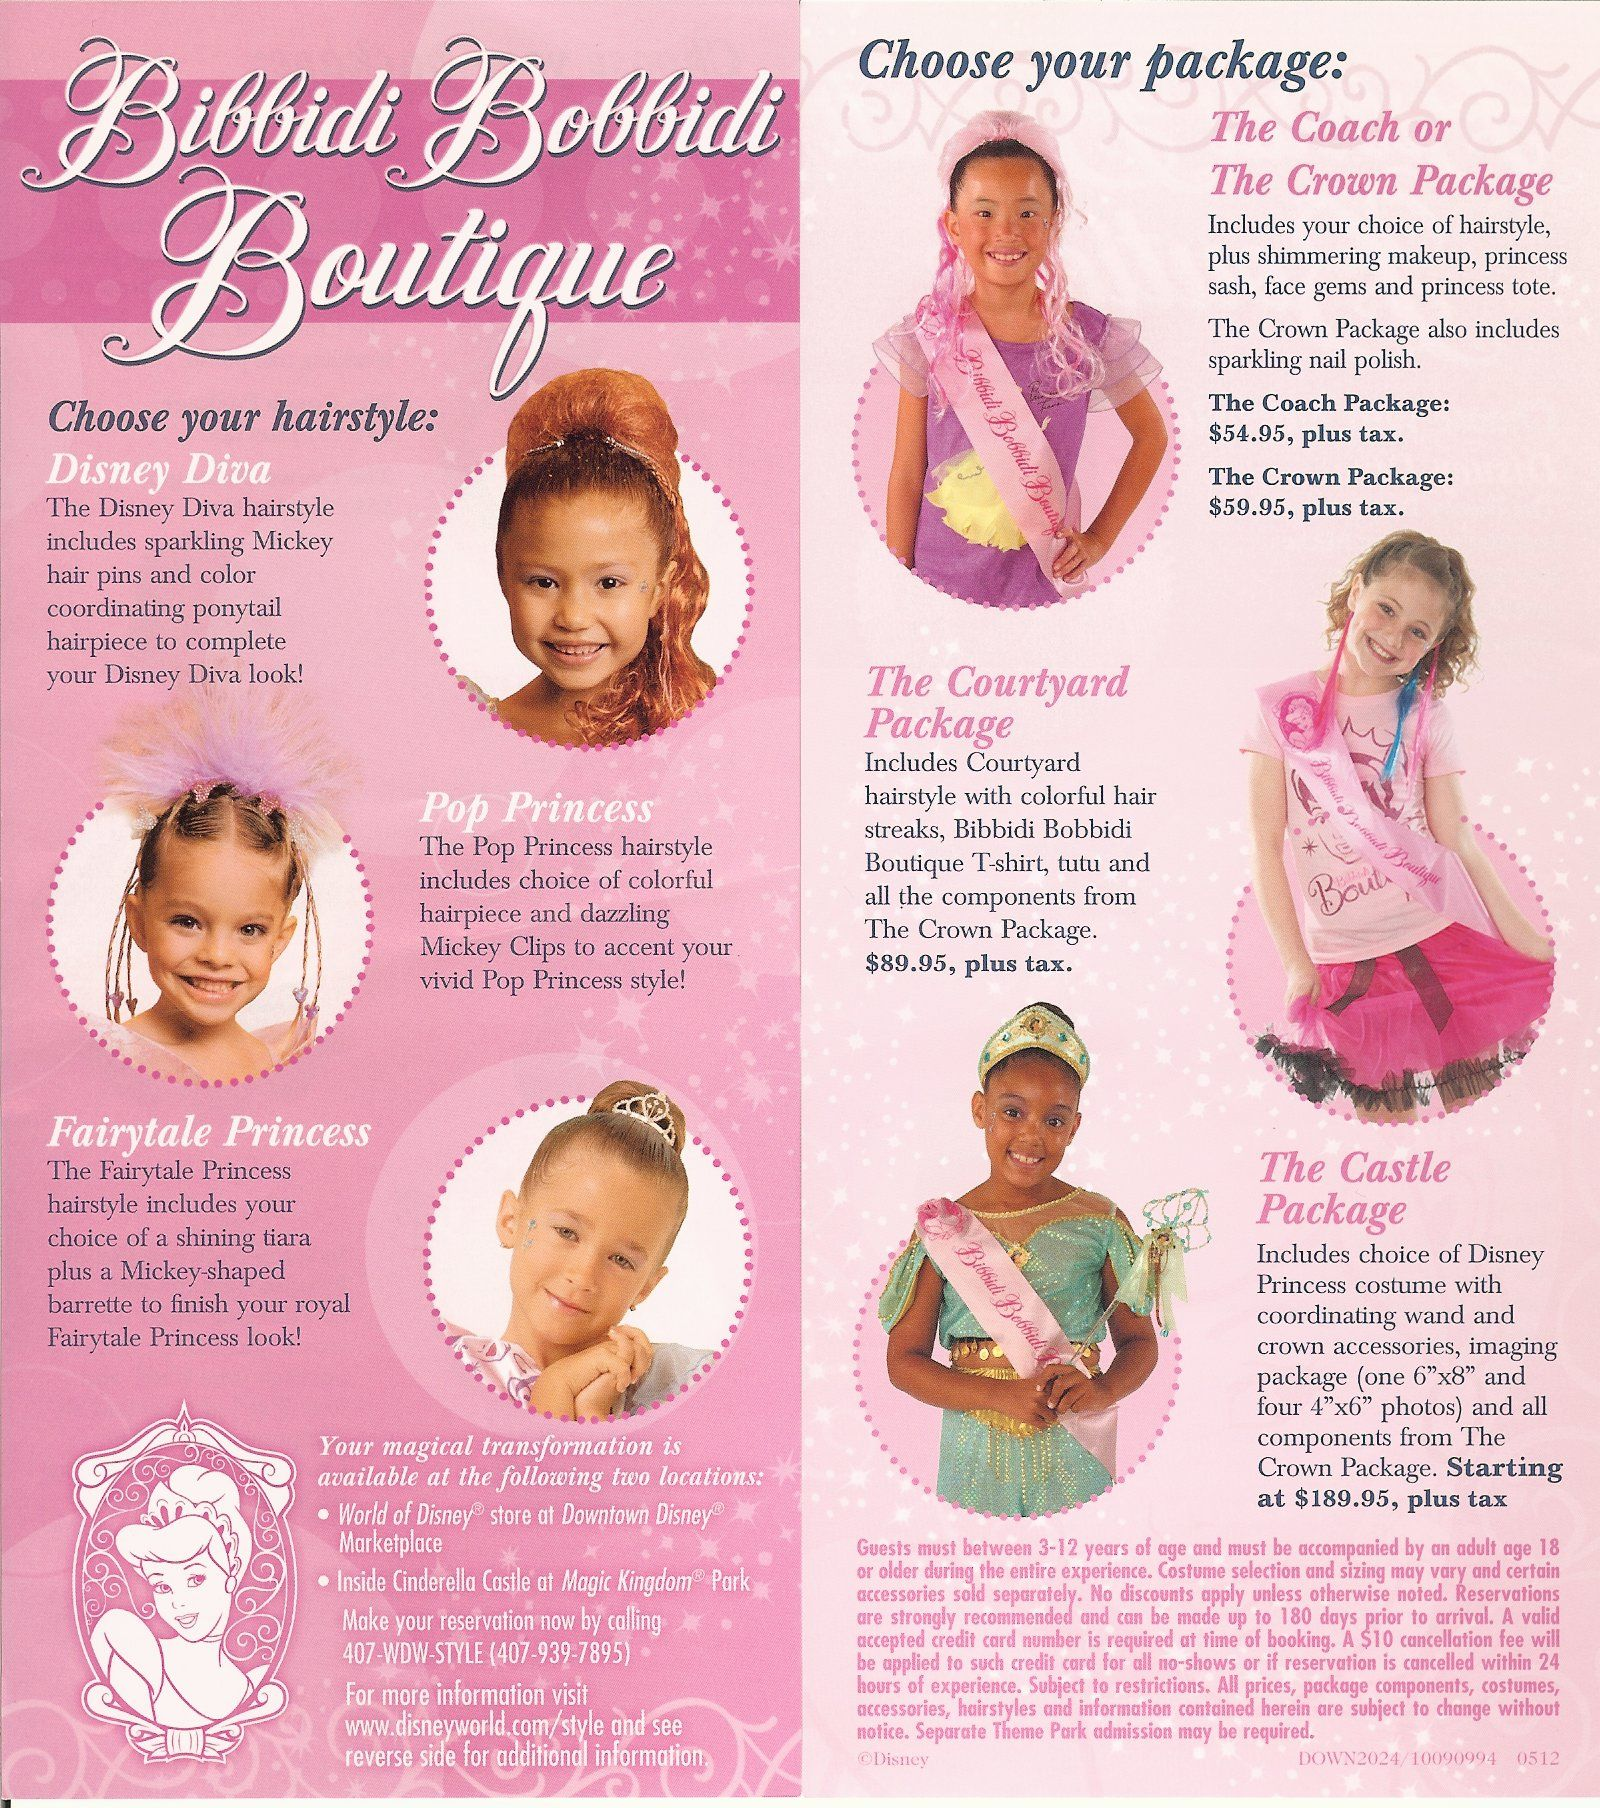 Bibbidi Bobbidi Boutique Brochure There Are Different Packages